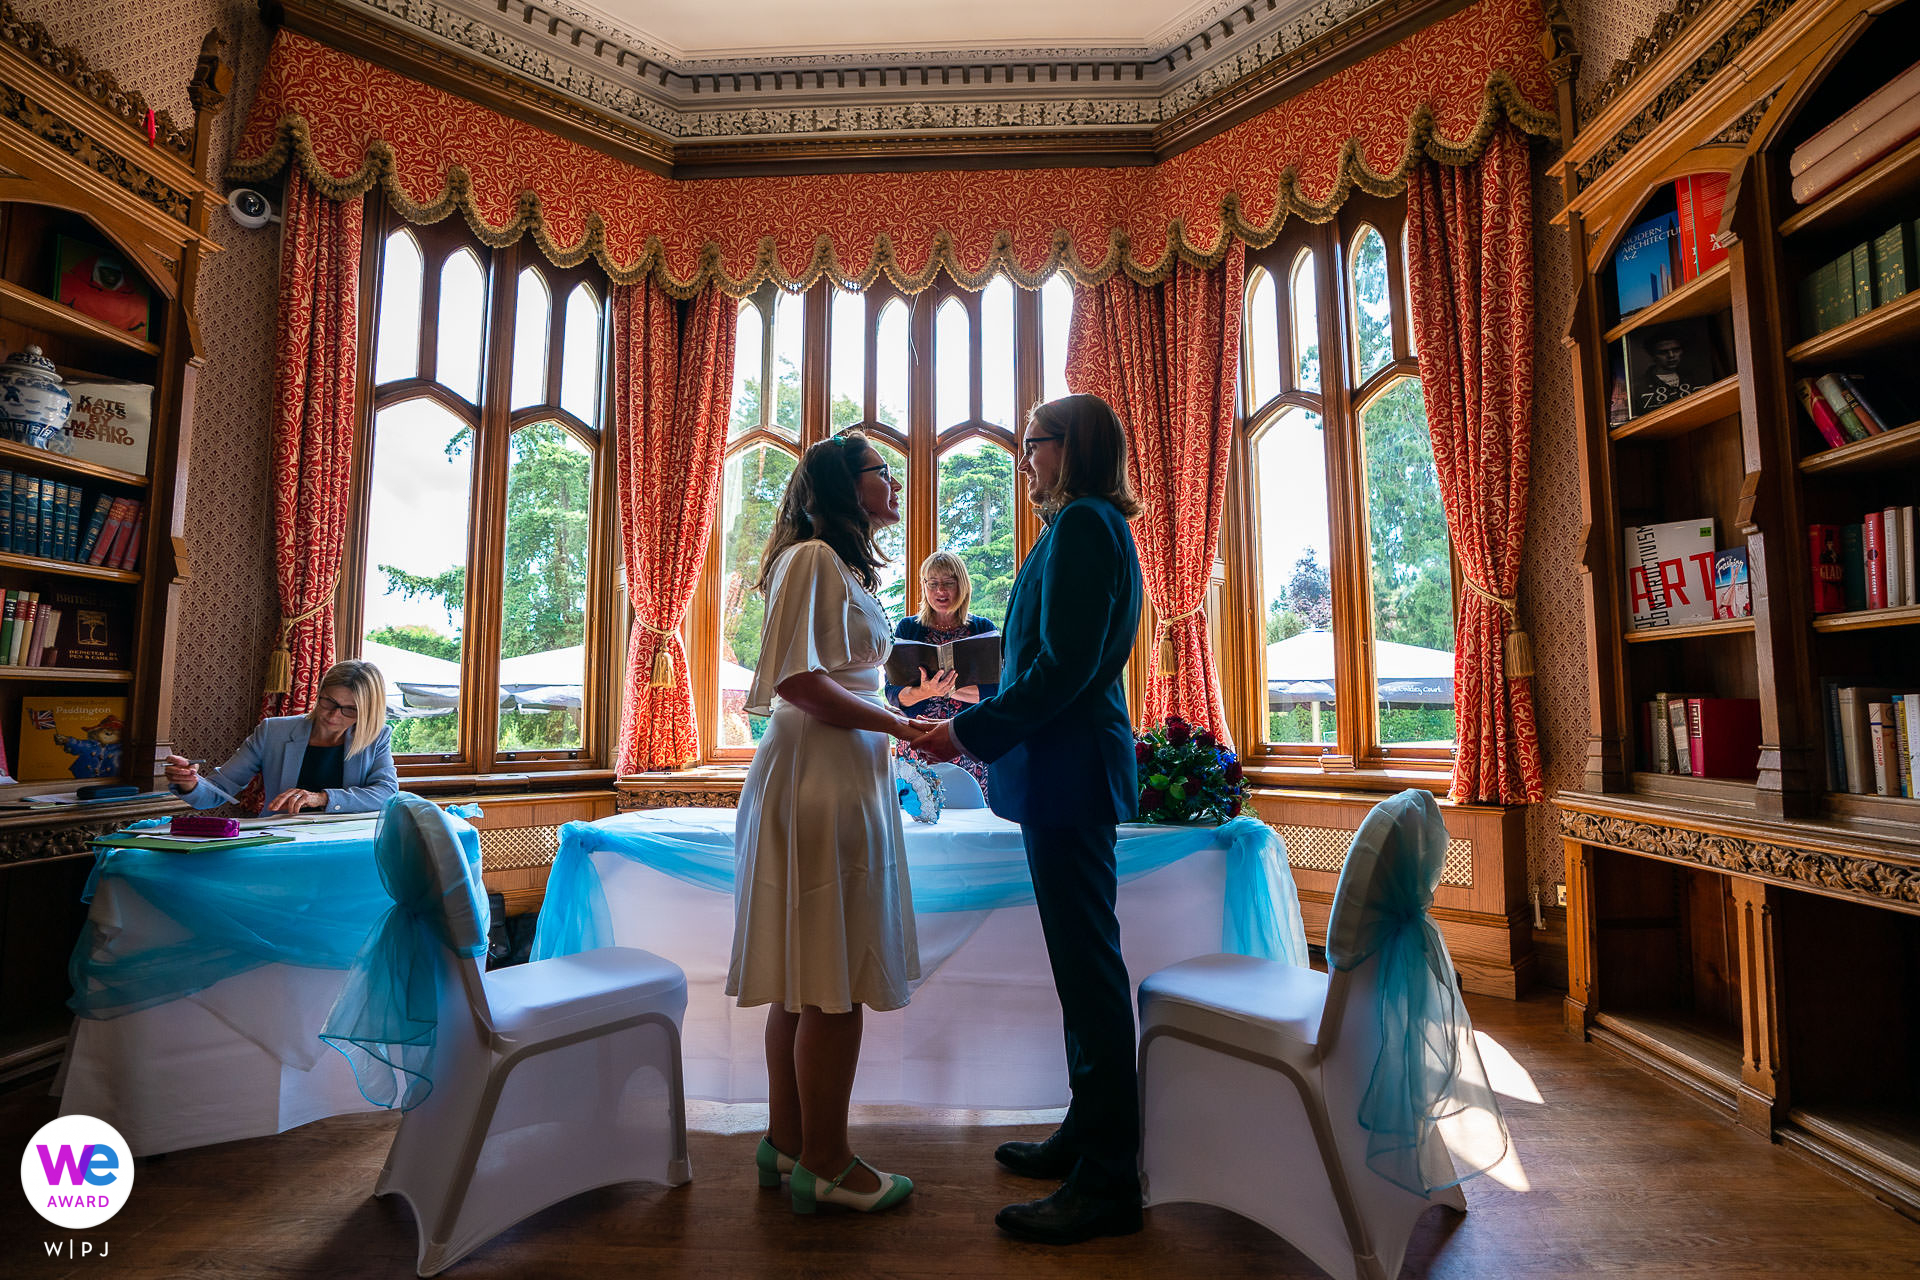 The Oakley Court, Windsor, Berkshire, United Kingdom Ceremony Elopement Image | This is where the Rocky Horror Show was filmed in 1975